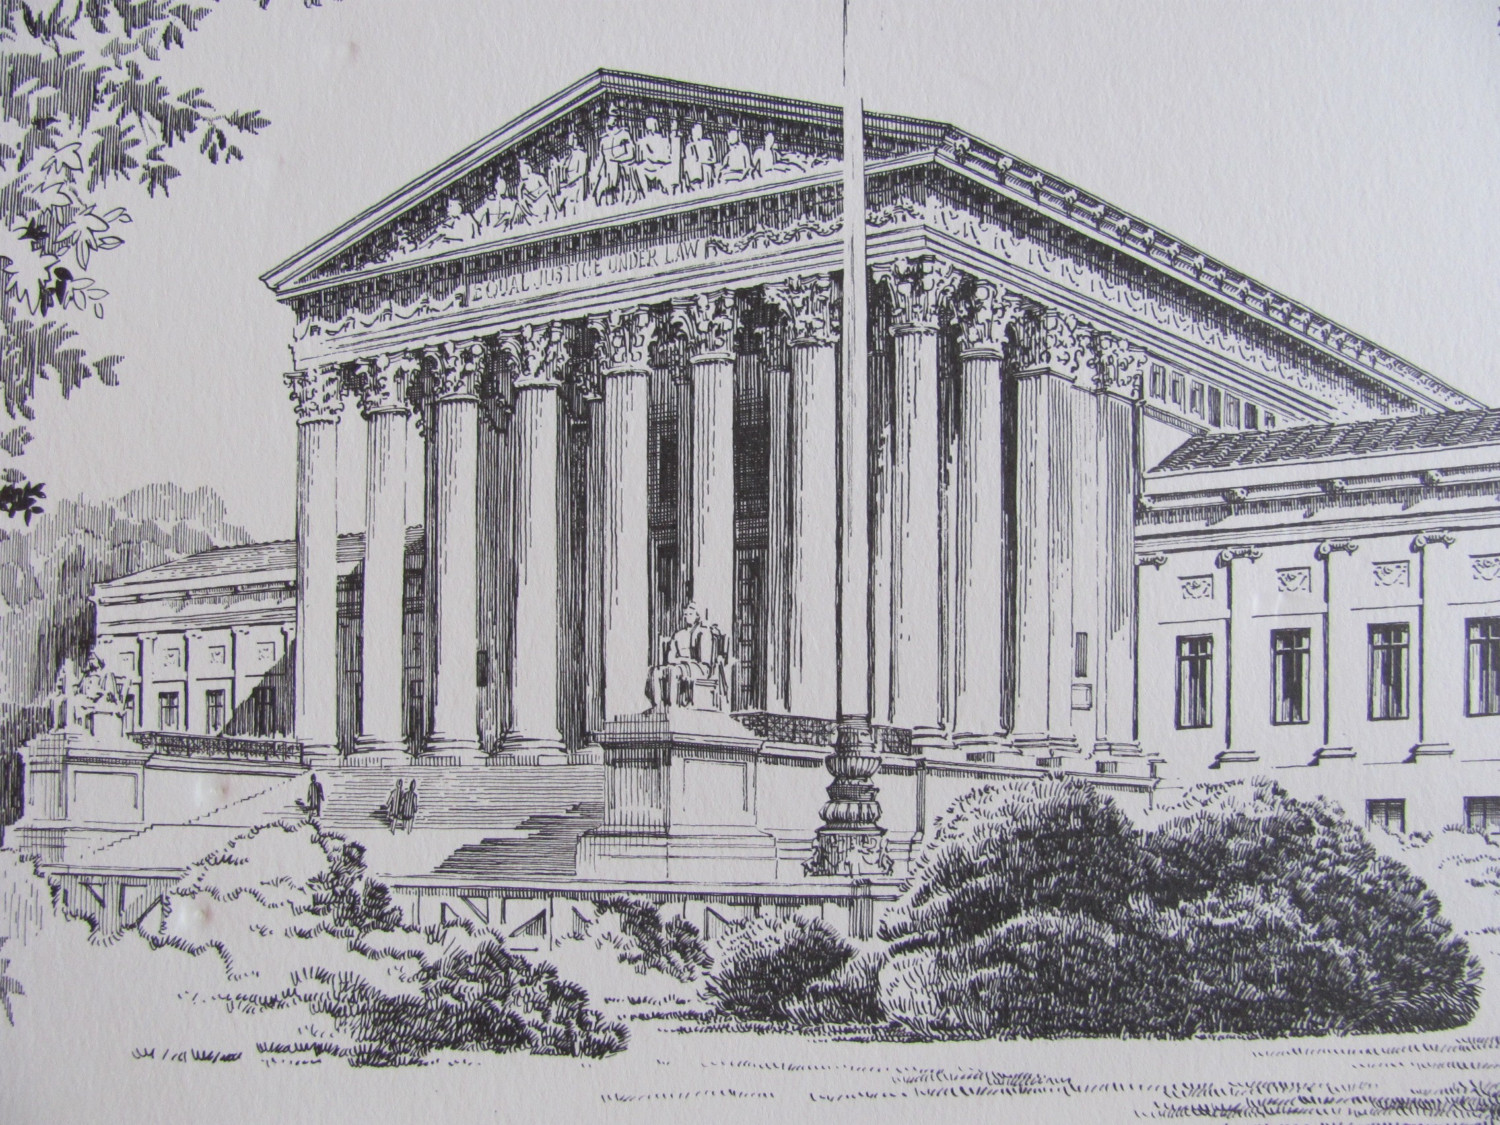 Drawn building supreme court building DON Supreme CANNAVARO  of